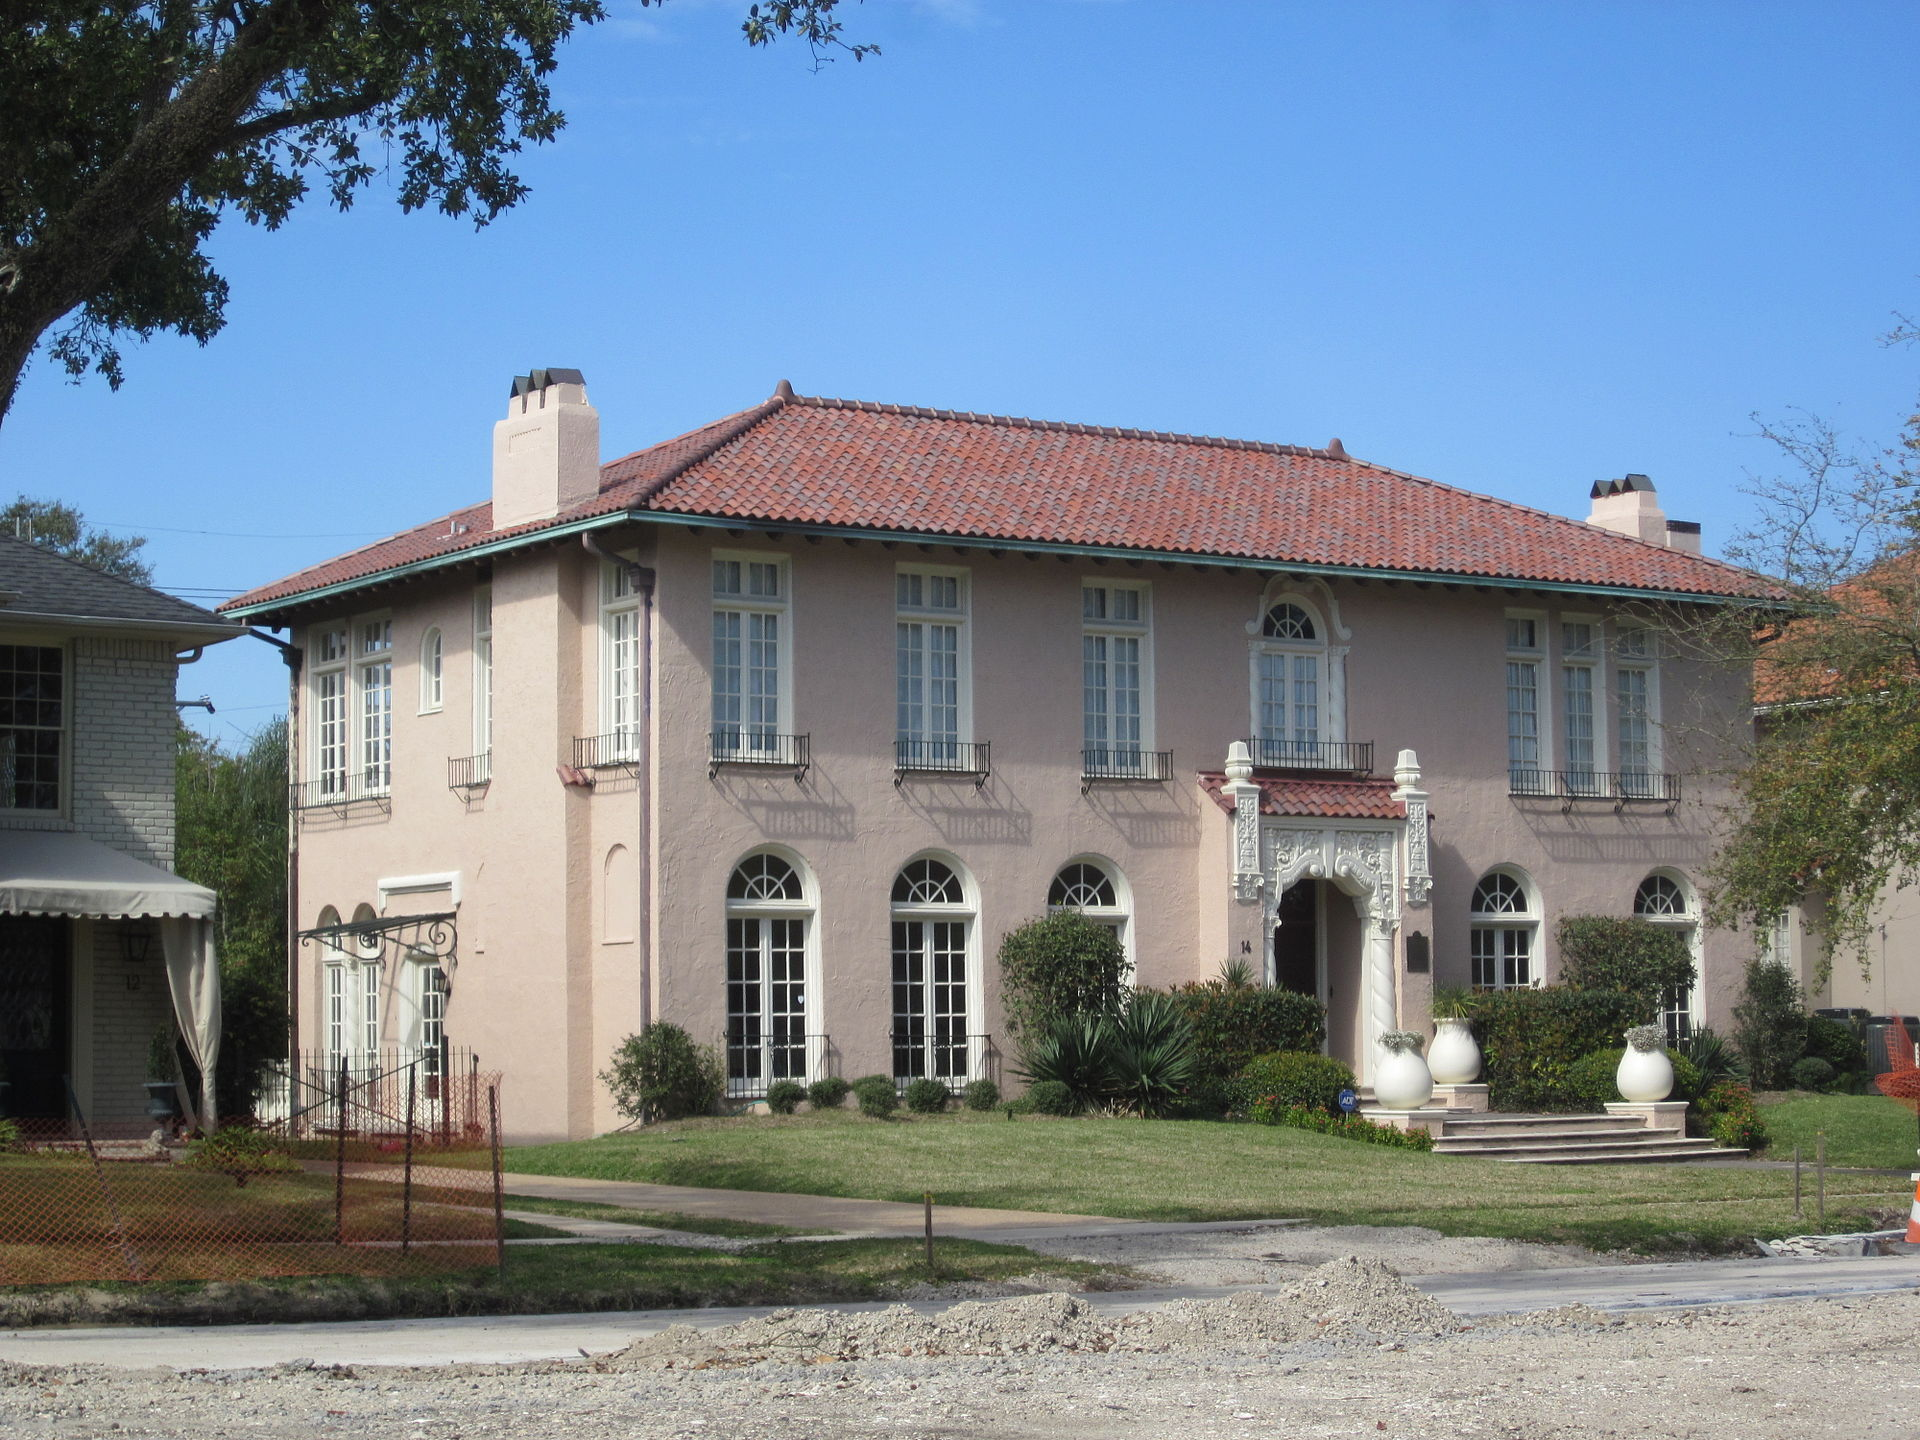 The Huey P. Long Mansion was built in the 1920s.